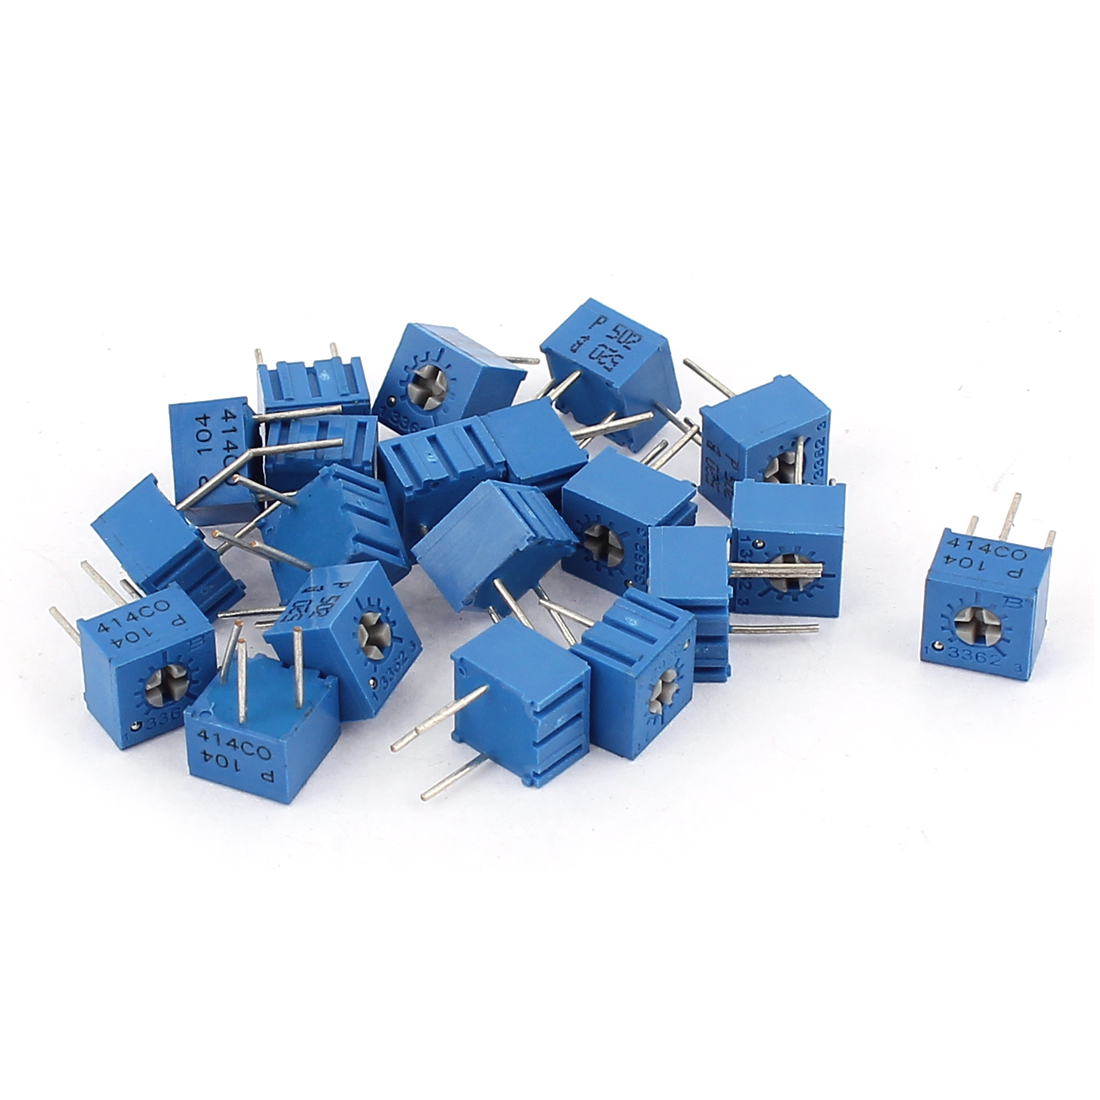 20Pcs Potentiometer Trimmer Variable Resistor 3362P-104 3362P-502